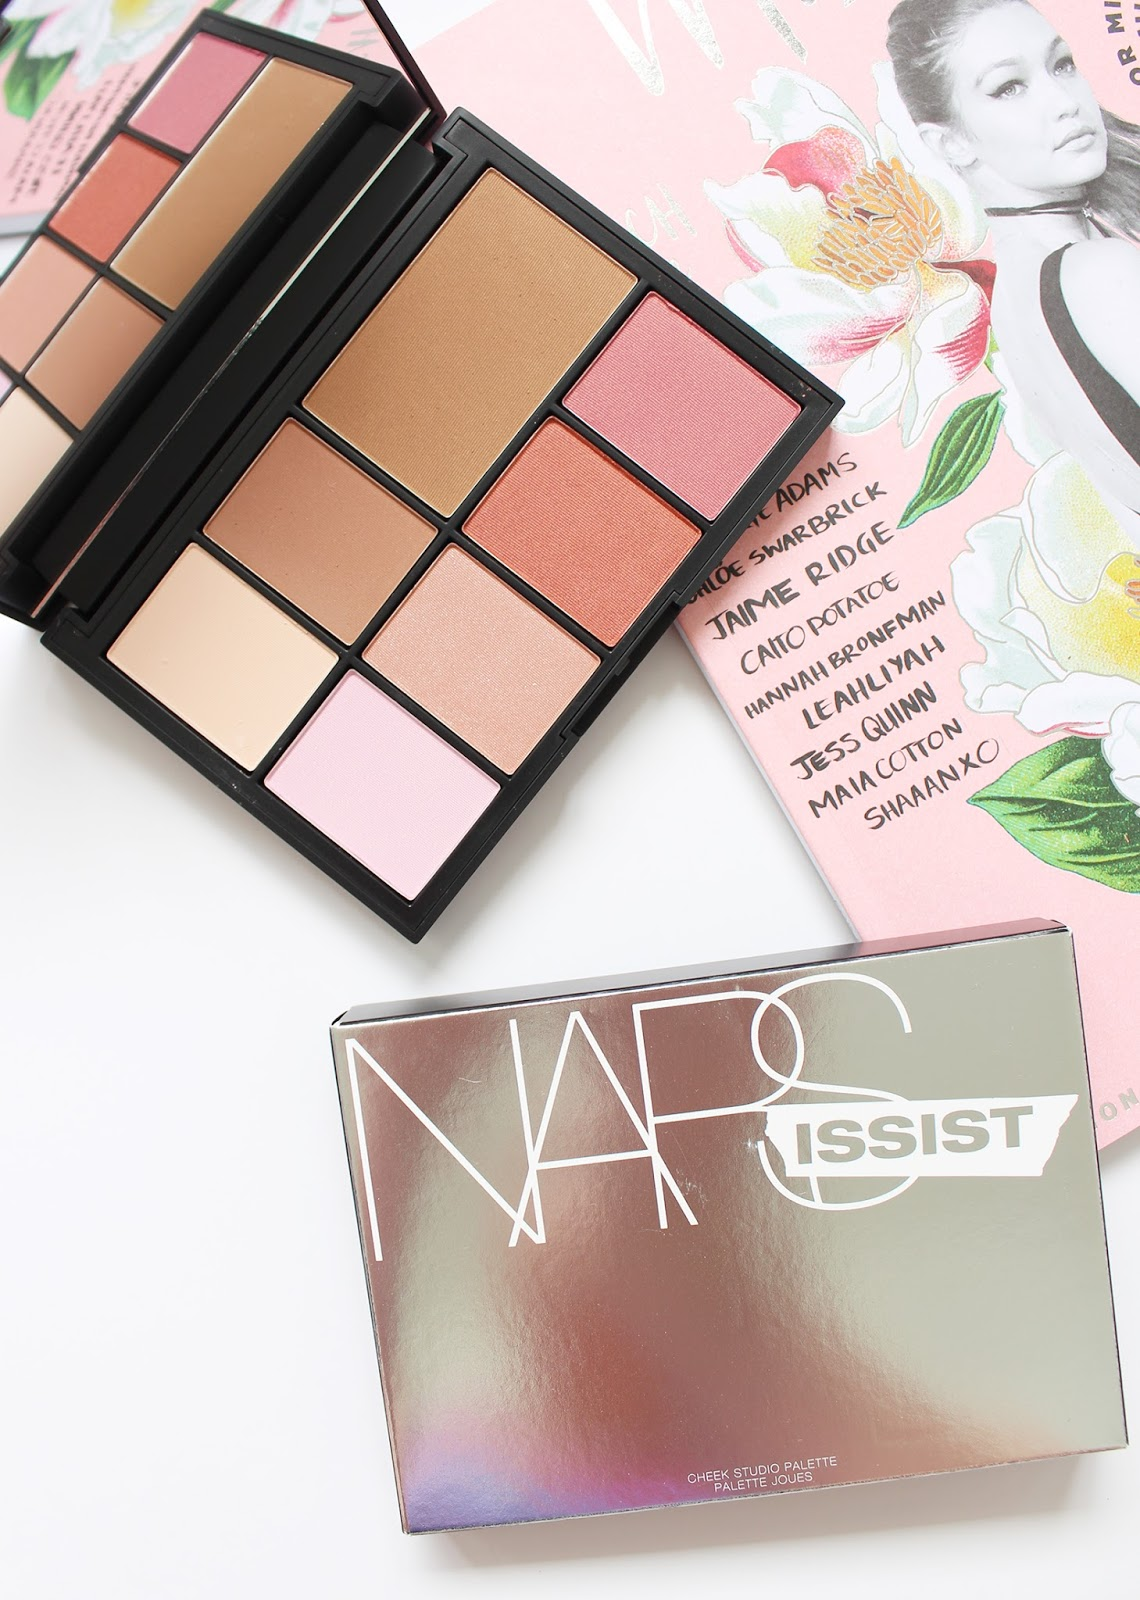 NARS | Narissist Cheek Palette - Review + Swatches - CassandraMyee